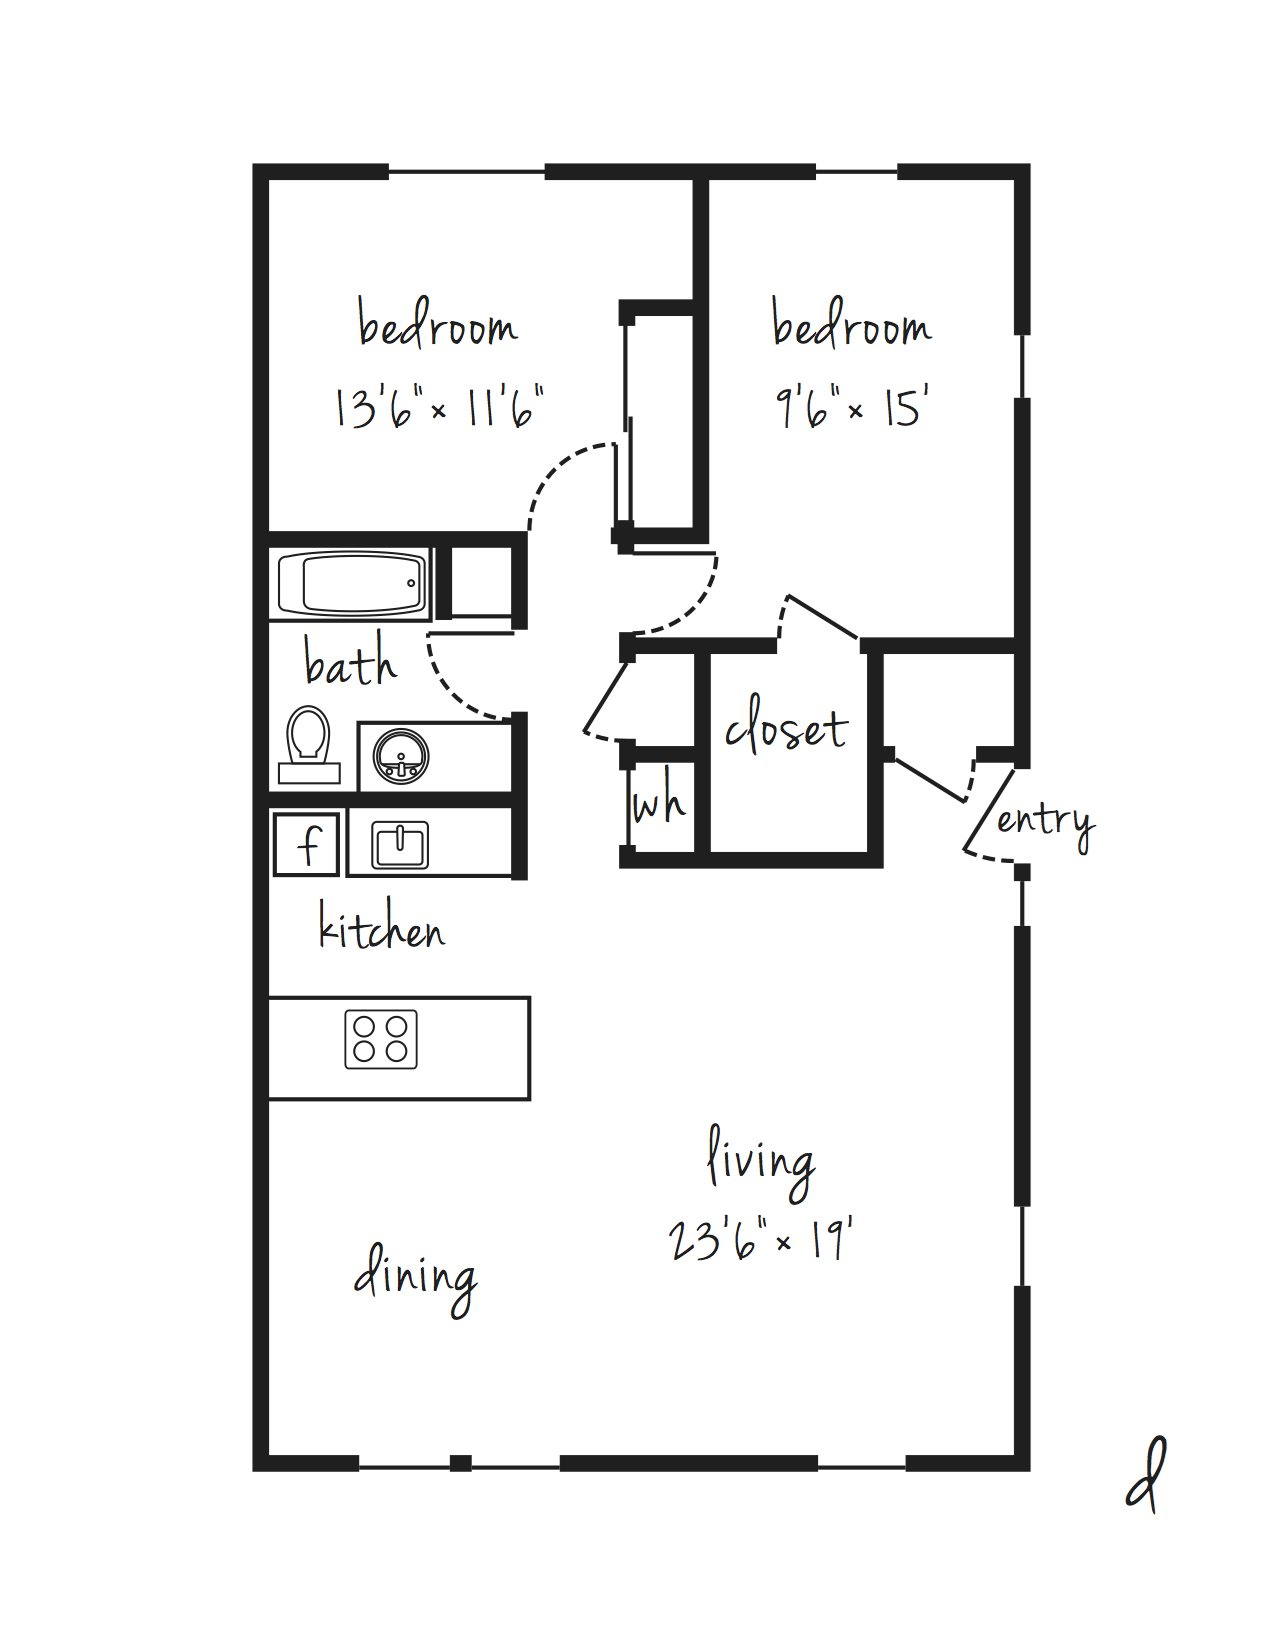 SOLD OUT 2x1 Updated Individual Lease Program Floor Plan 10